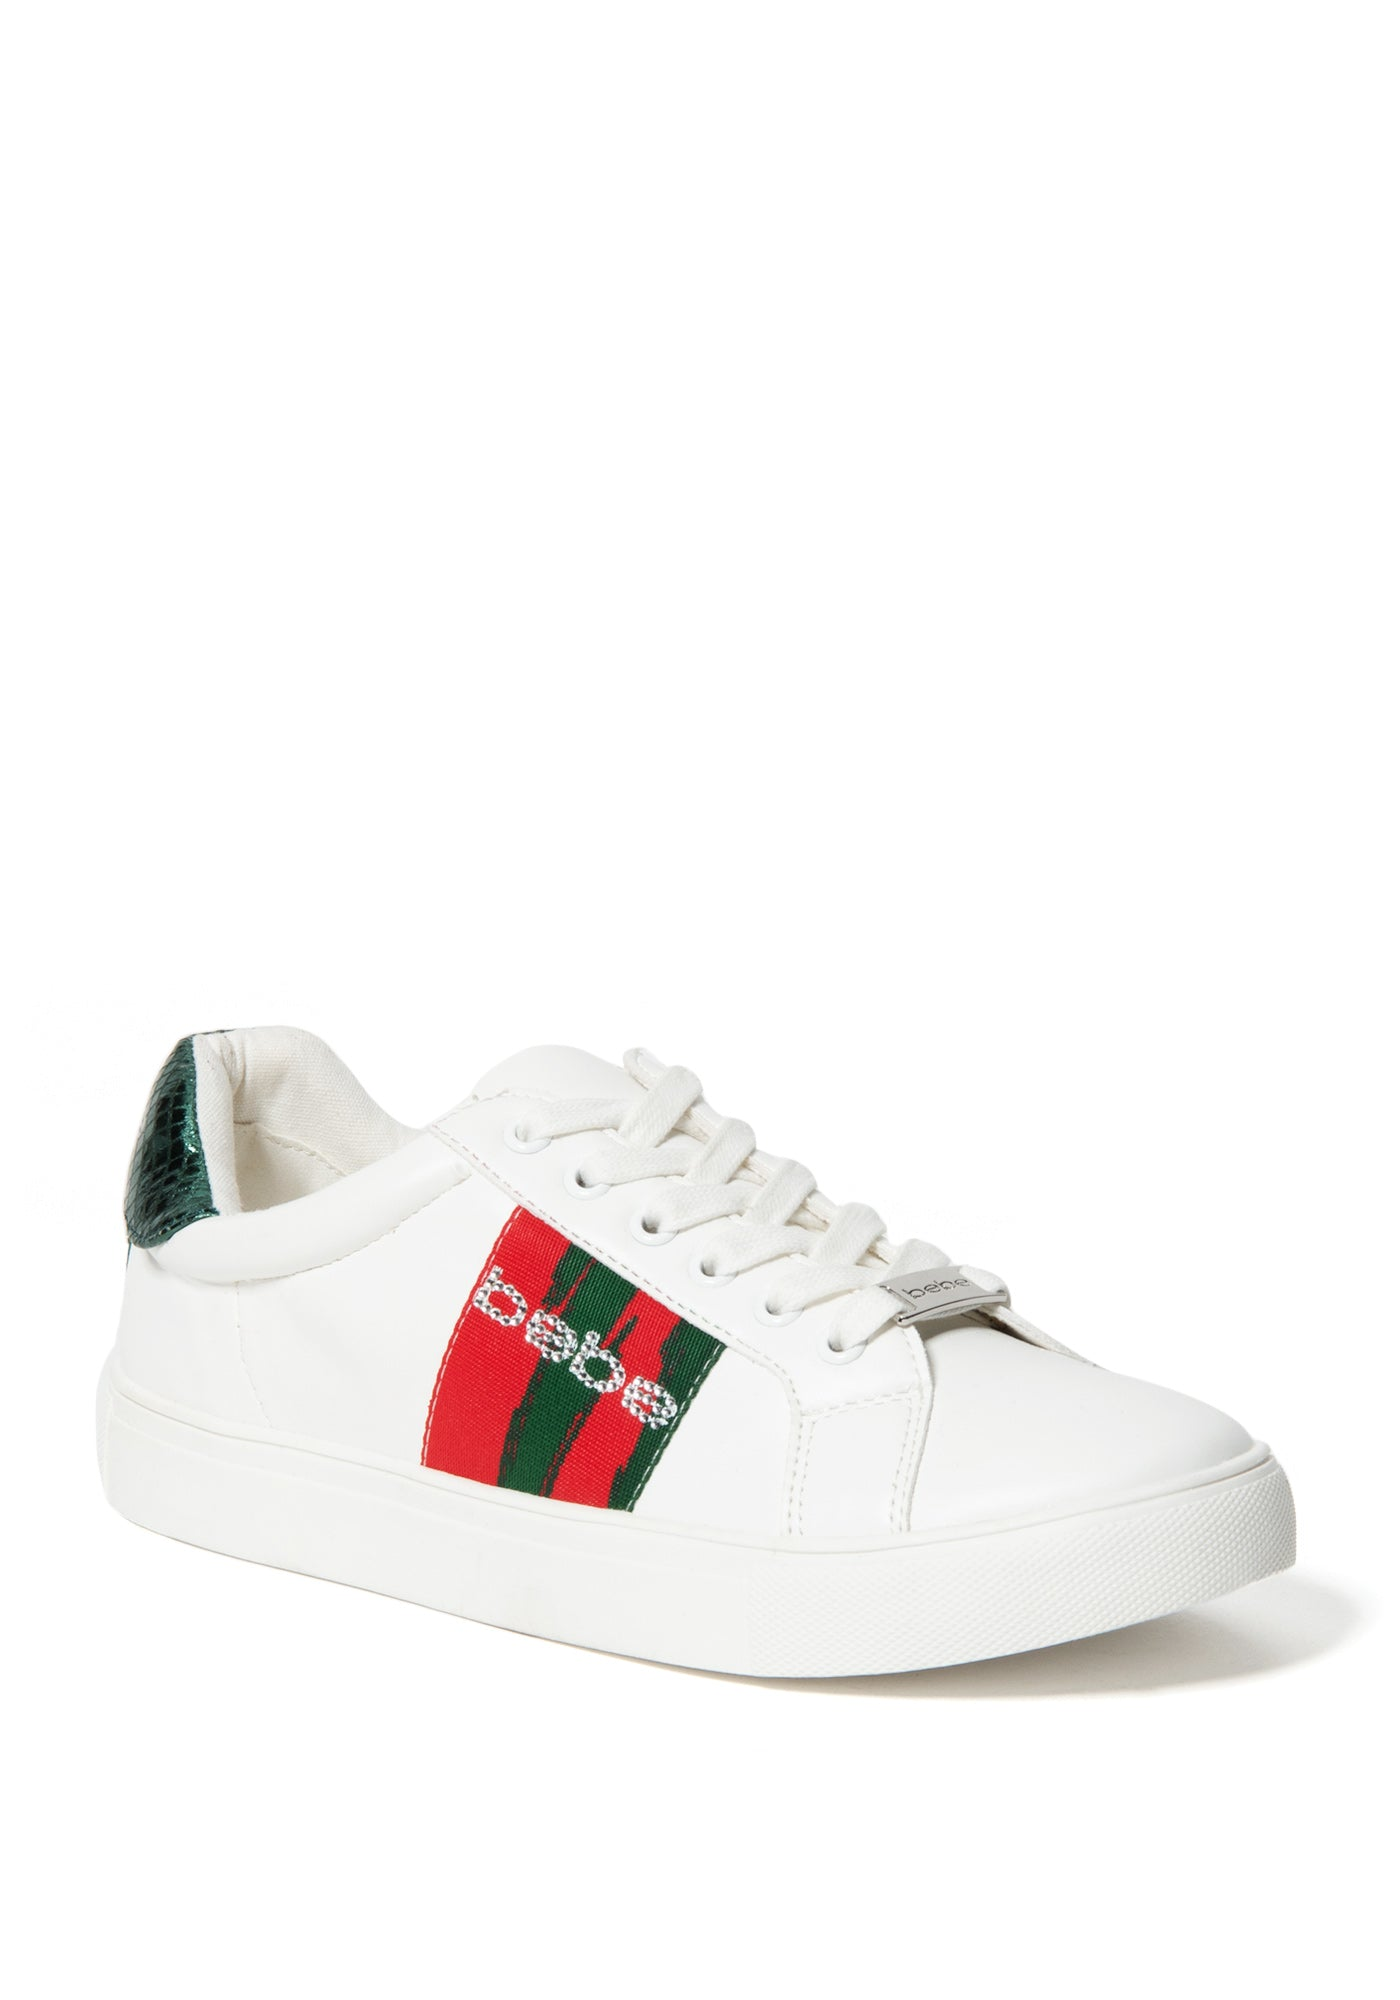 Bebe Women's Coley Logo Sneakers, Size 6 in White Green O Synthetic